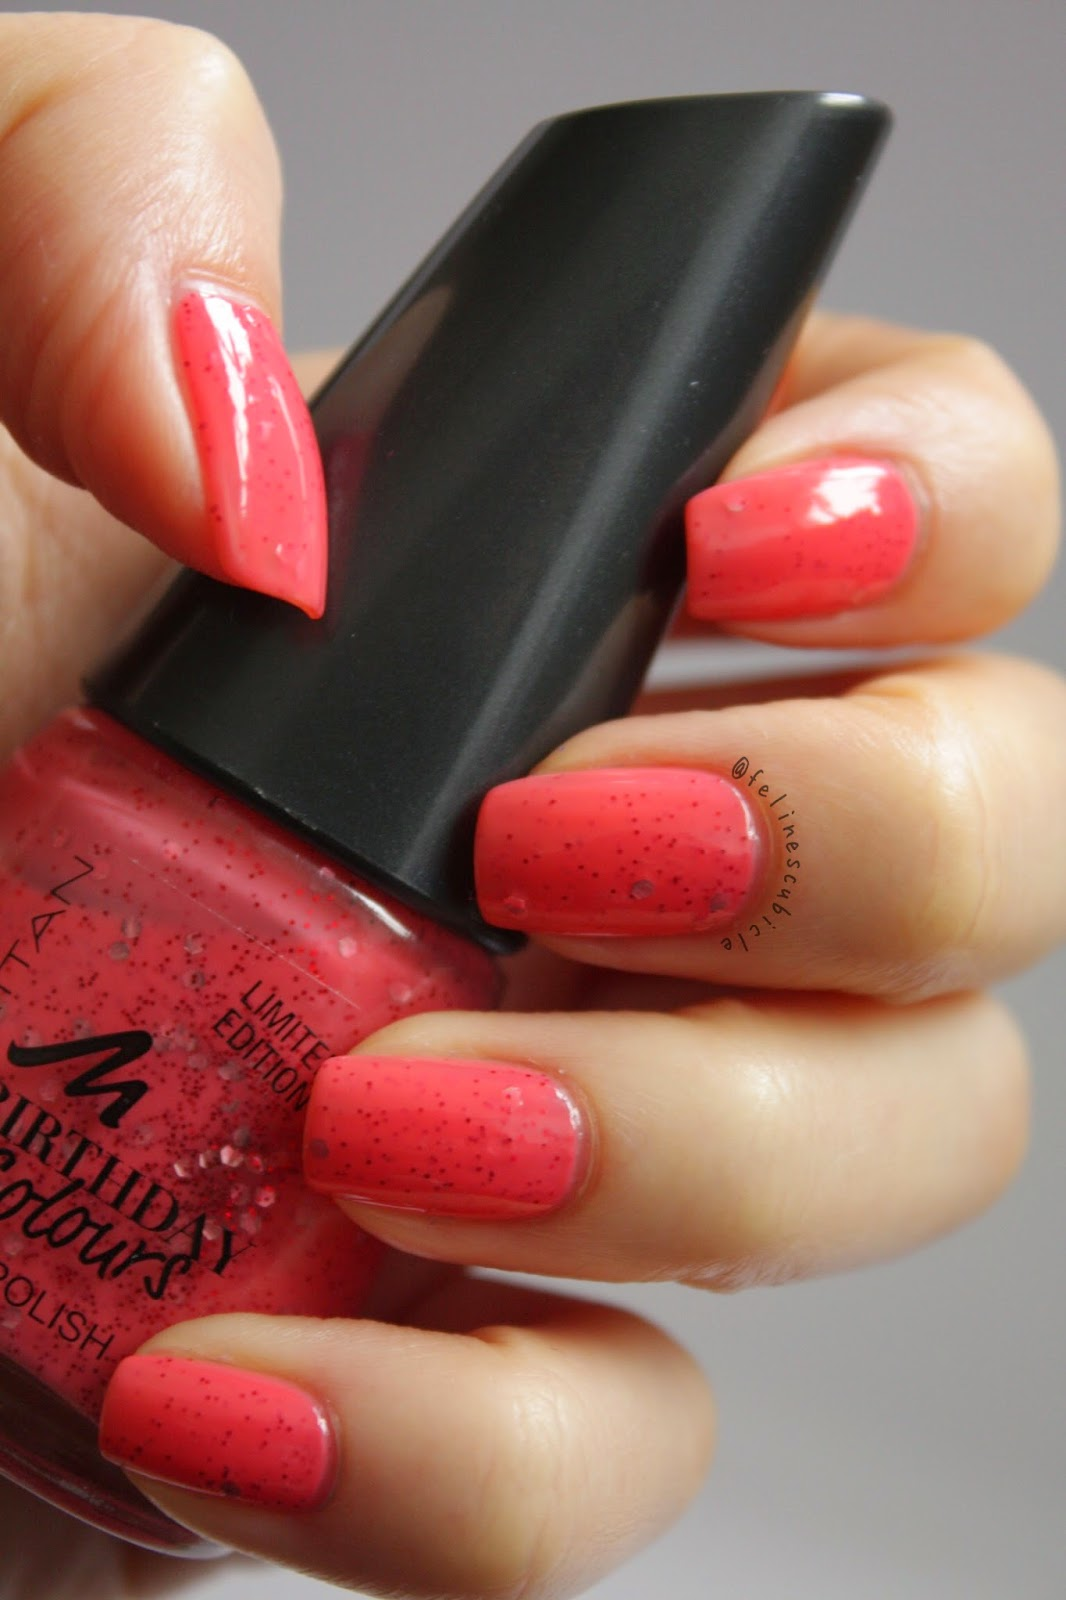 Not That New Anymore But I Still Wanted To Show You Strawberry Cake By Manhattan From Their Birthday Colours Collection This Has A Coral Pink Crelly